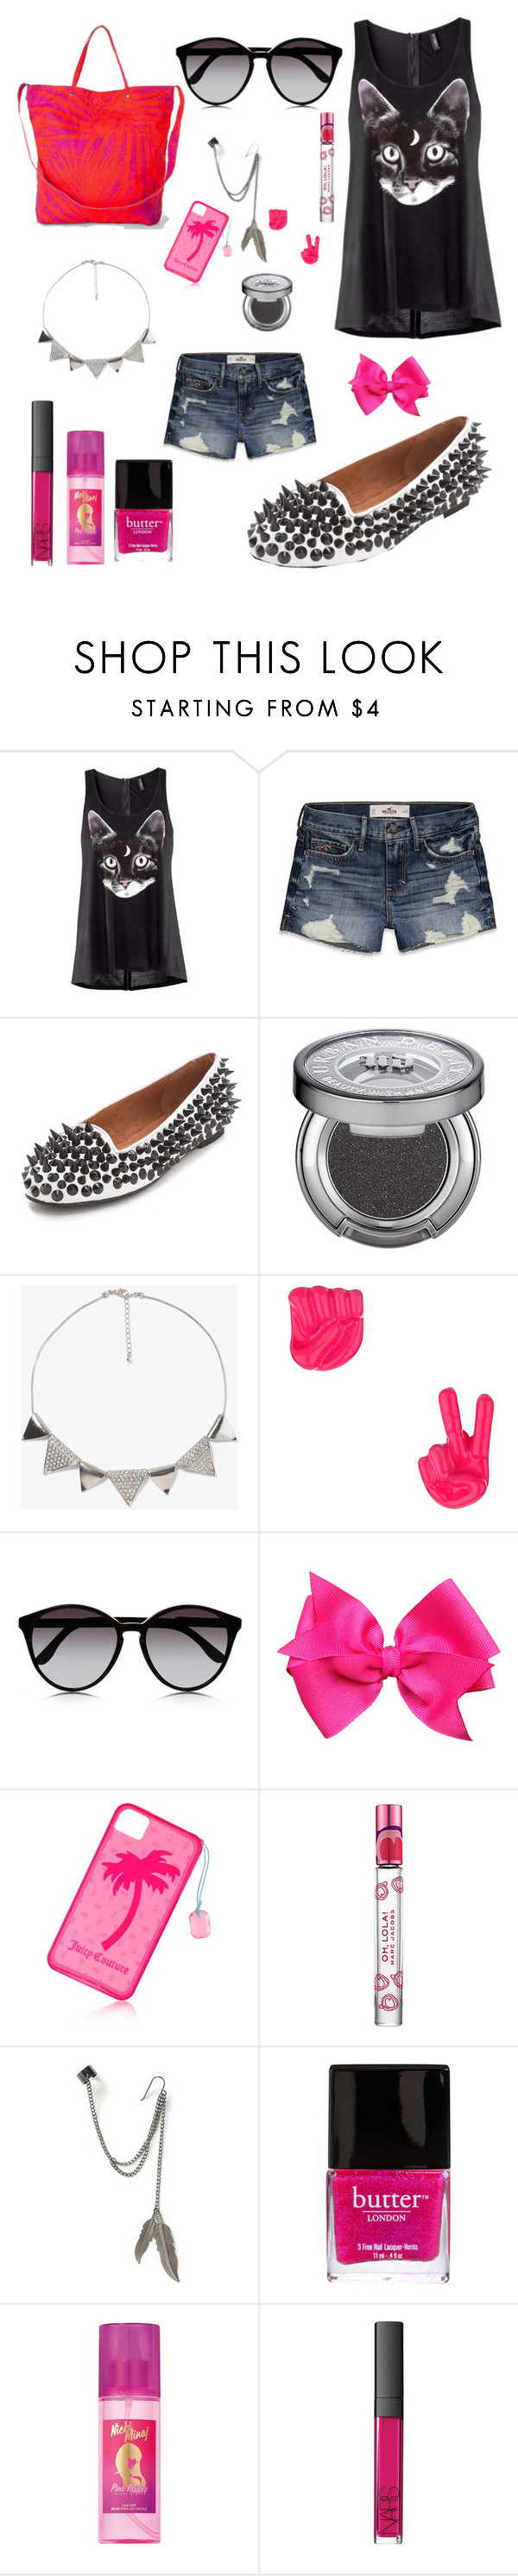 """""""Deadly Nightshade """" by ugmscortney ❤ liked on Polyvore featuring H&M, Hollister Co., Jeffrey Campbell, Urban Decay, Forever 21, Topshop, STELLA McCARTNEY, Juicy Couture, Marc Jacobs and claire's"""